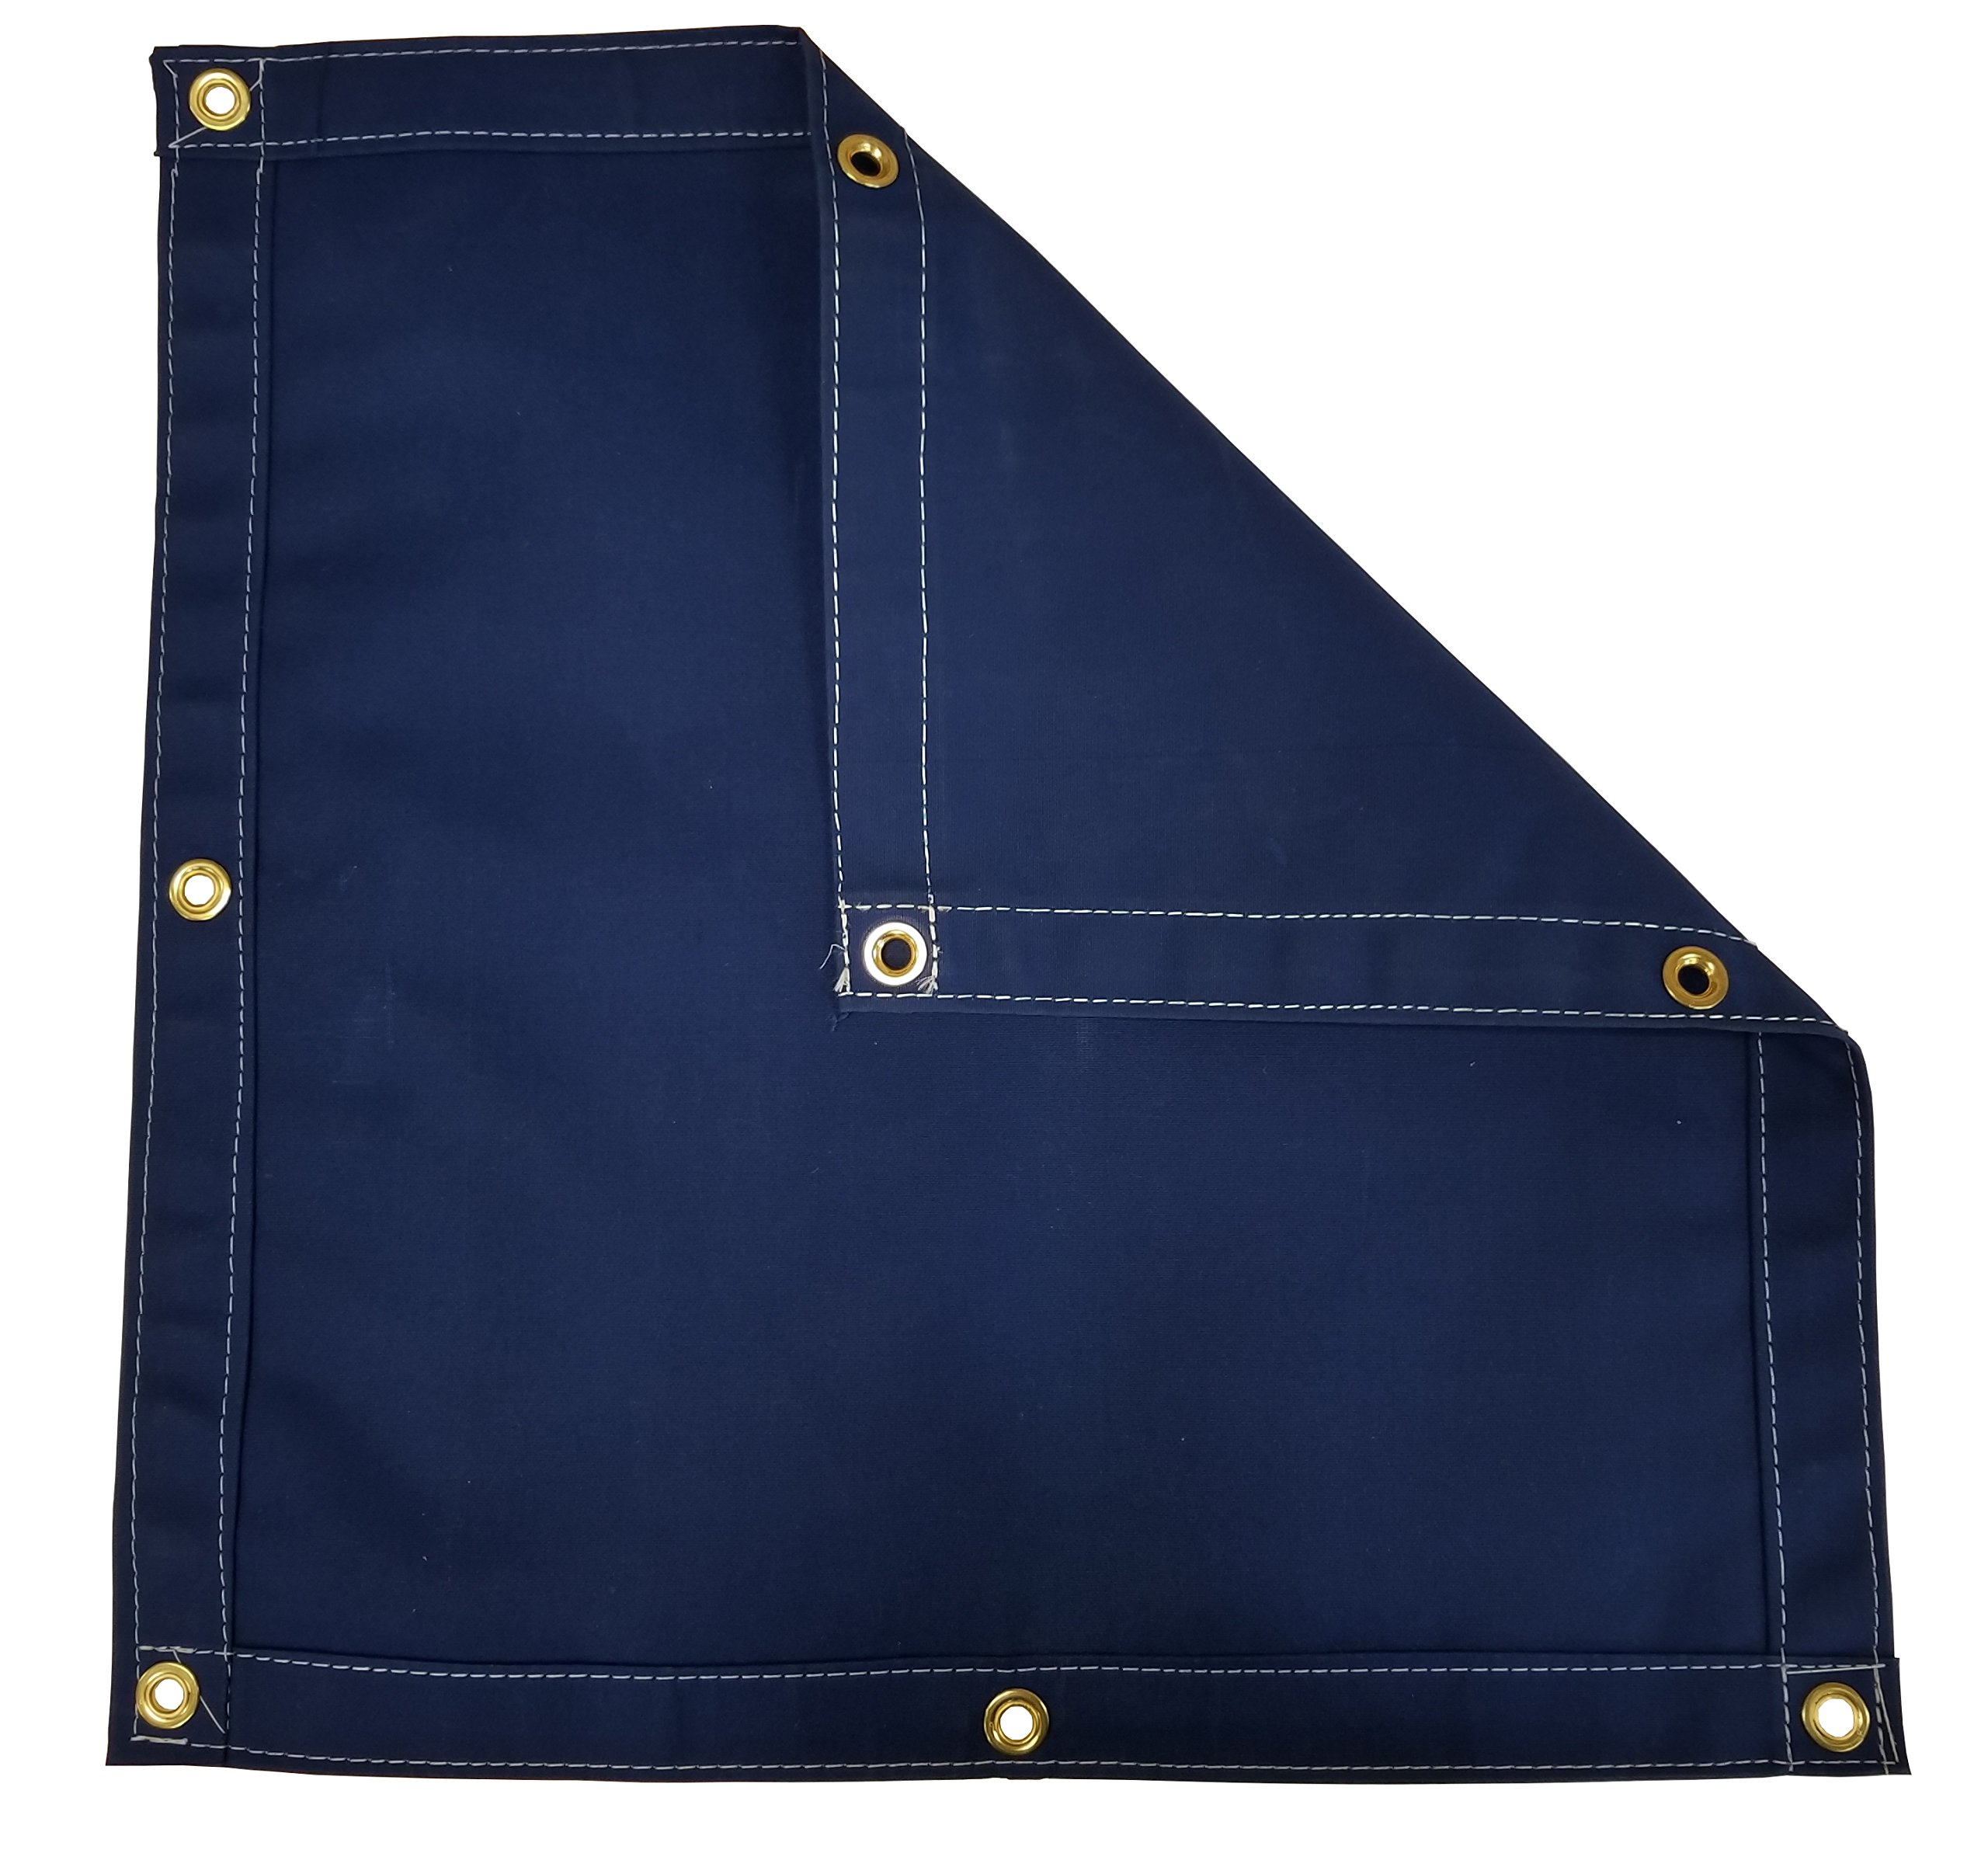 Blue Workhorse Polyester Canvas Tarp 5 Ft. x 7 Ft. - 14.5 Oz. by TarpsDirect (Image #1)